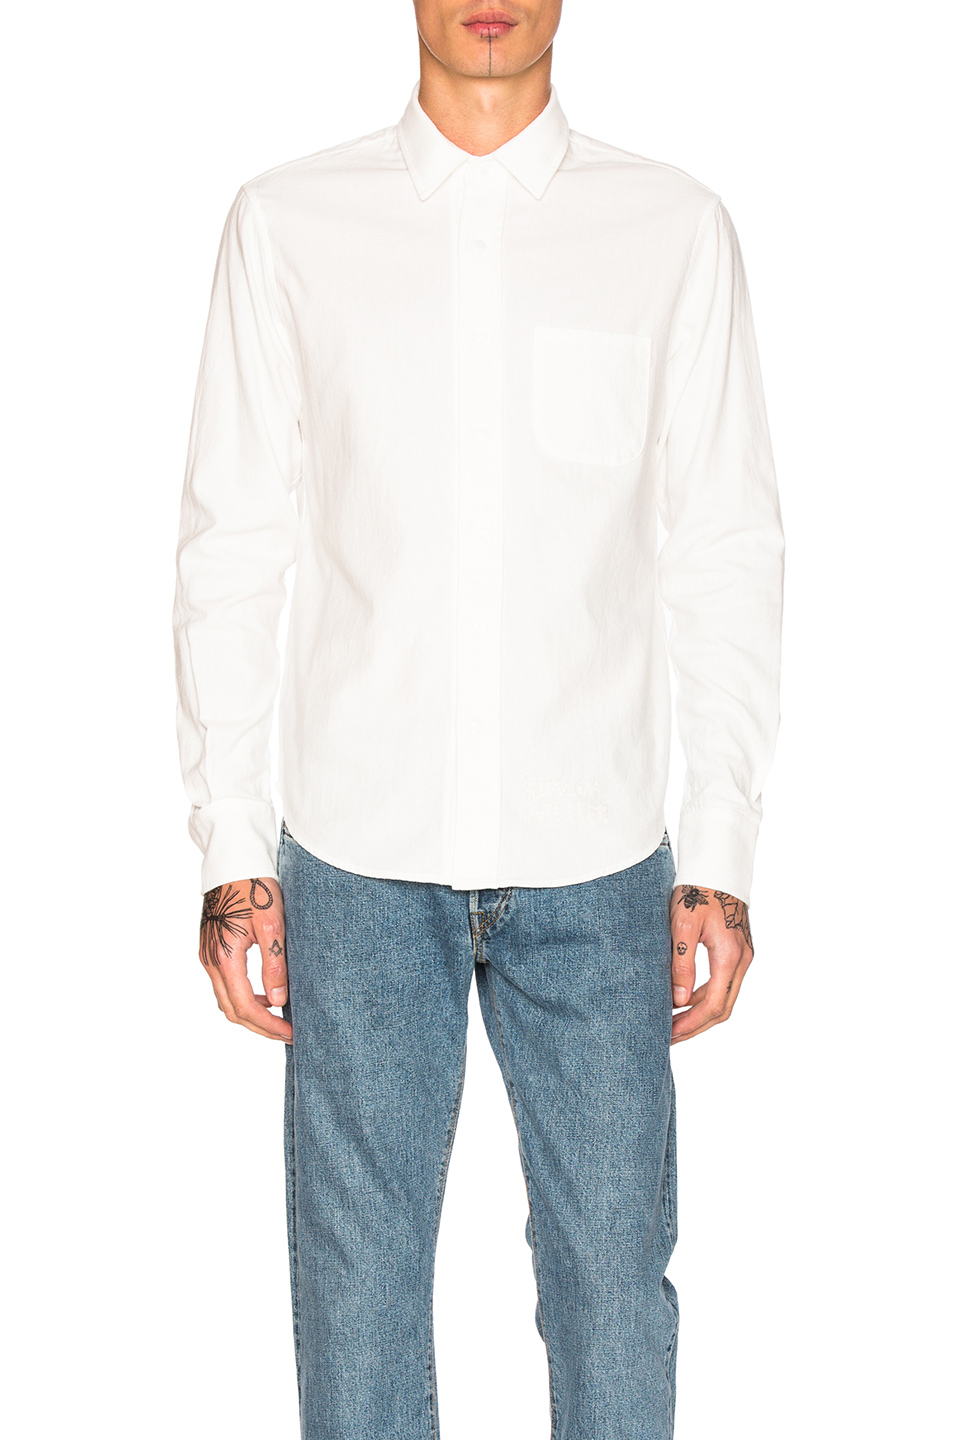 Simon Miller Arco Shirt in White